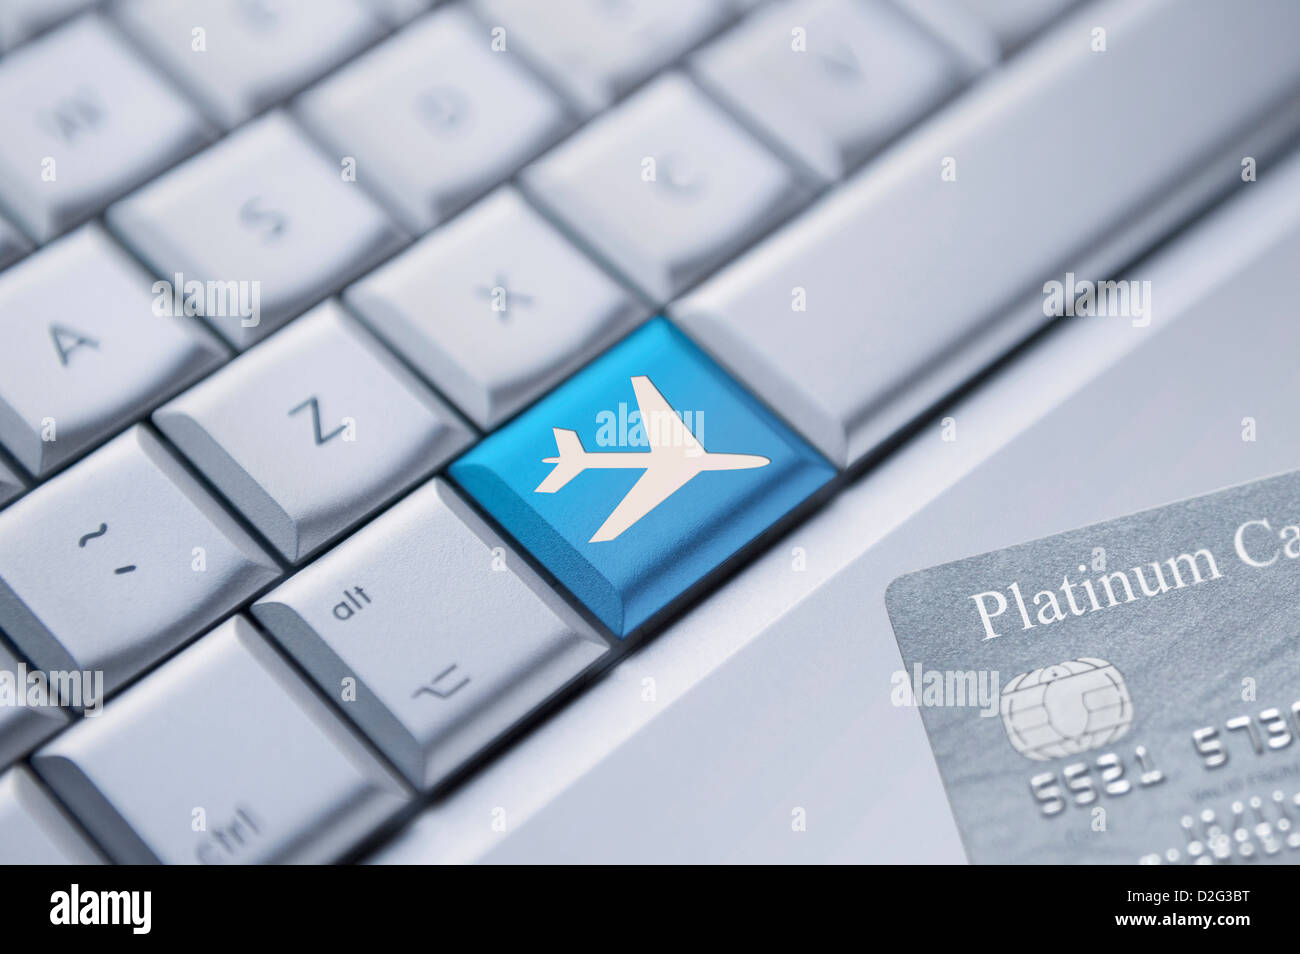 Booking flights / holiday online - Stock Image